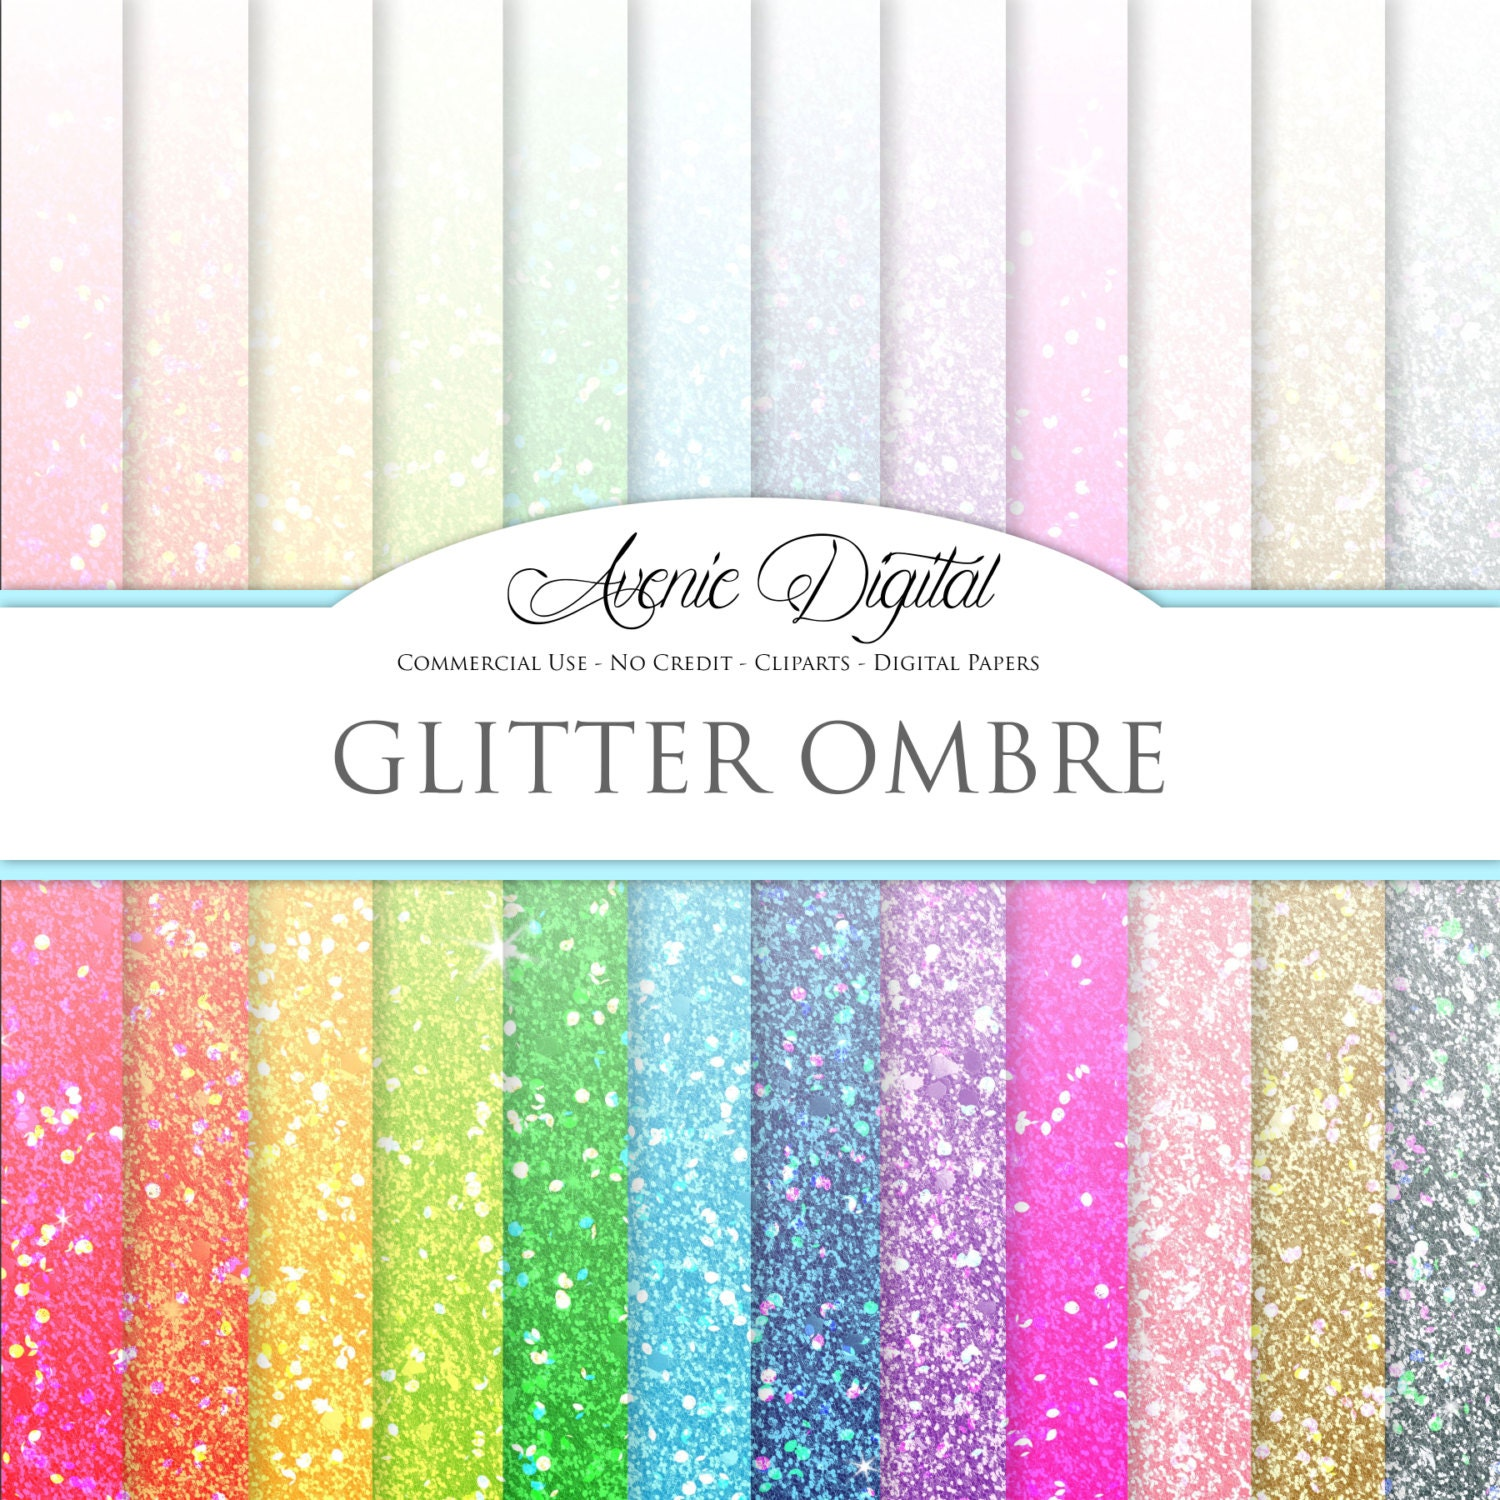 How to scrapbook with glitter - Glitter Ombre Digital Paper Scrapbooking Backgrounds Gradient Patterns For Commercial Use Dip Dye Rainbow Confetti Instant Download